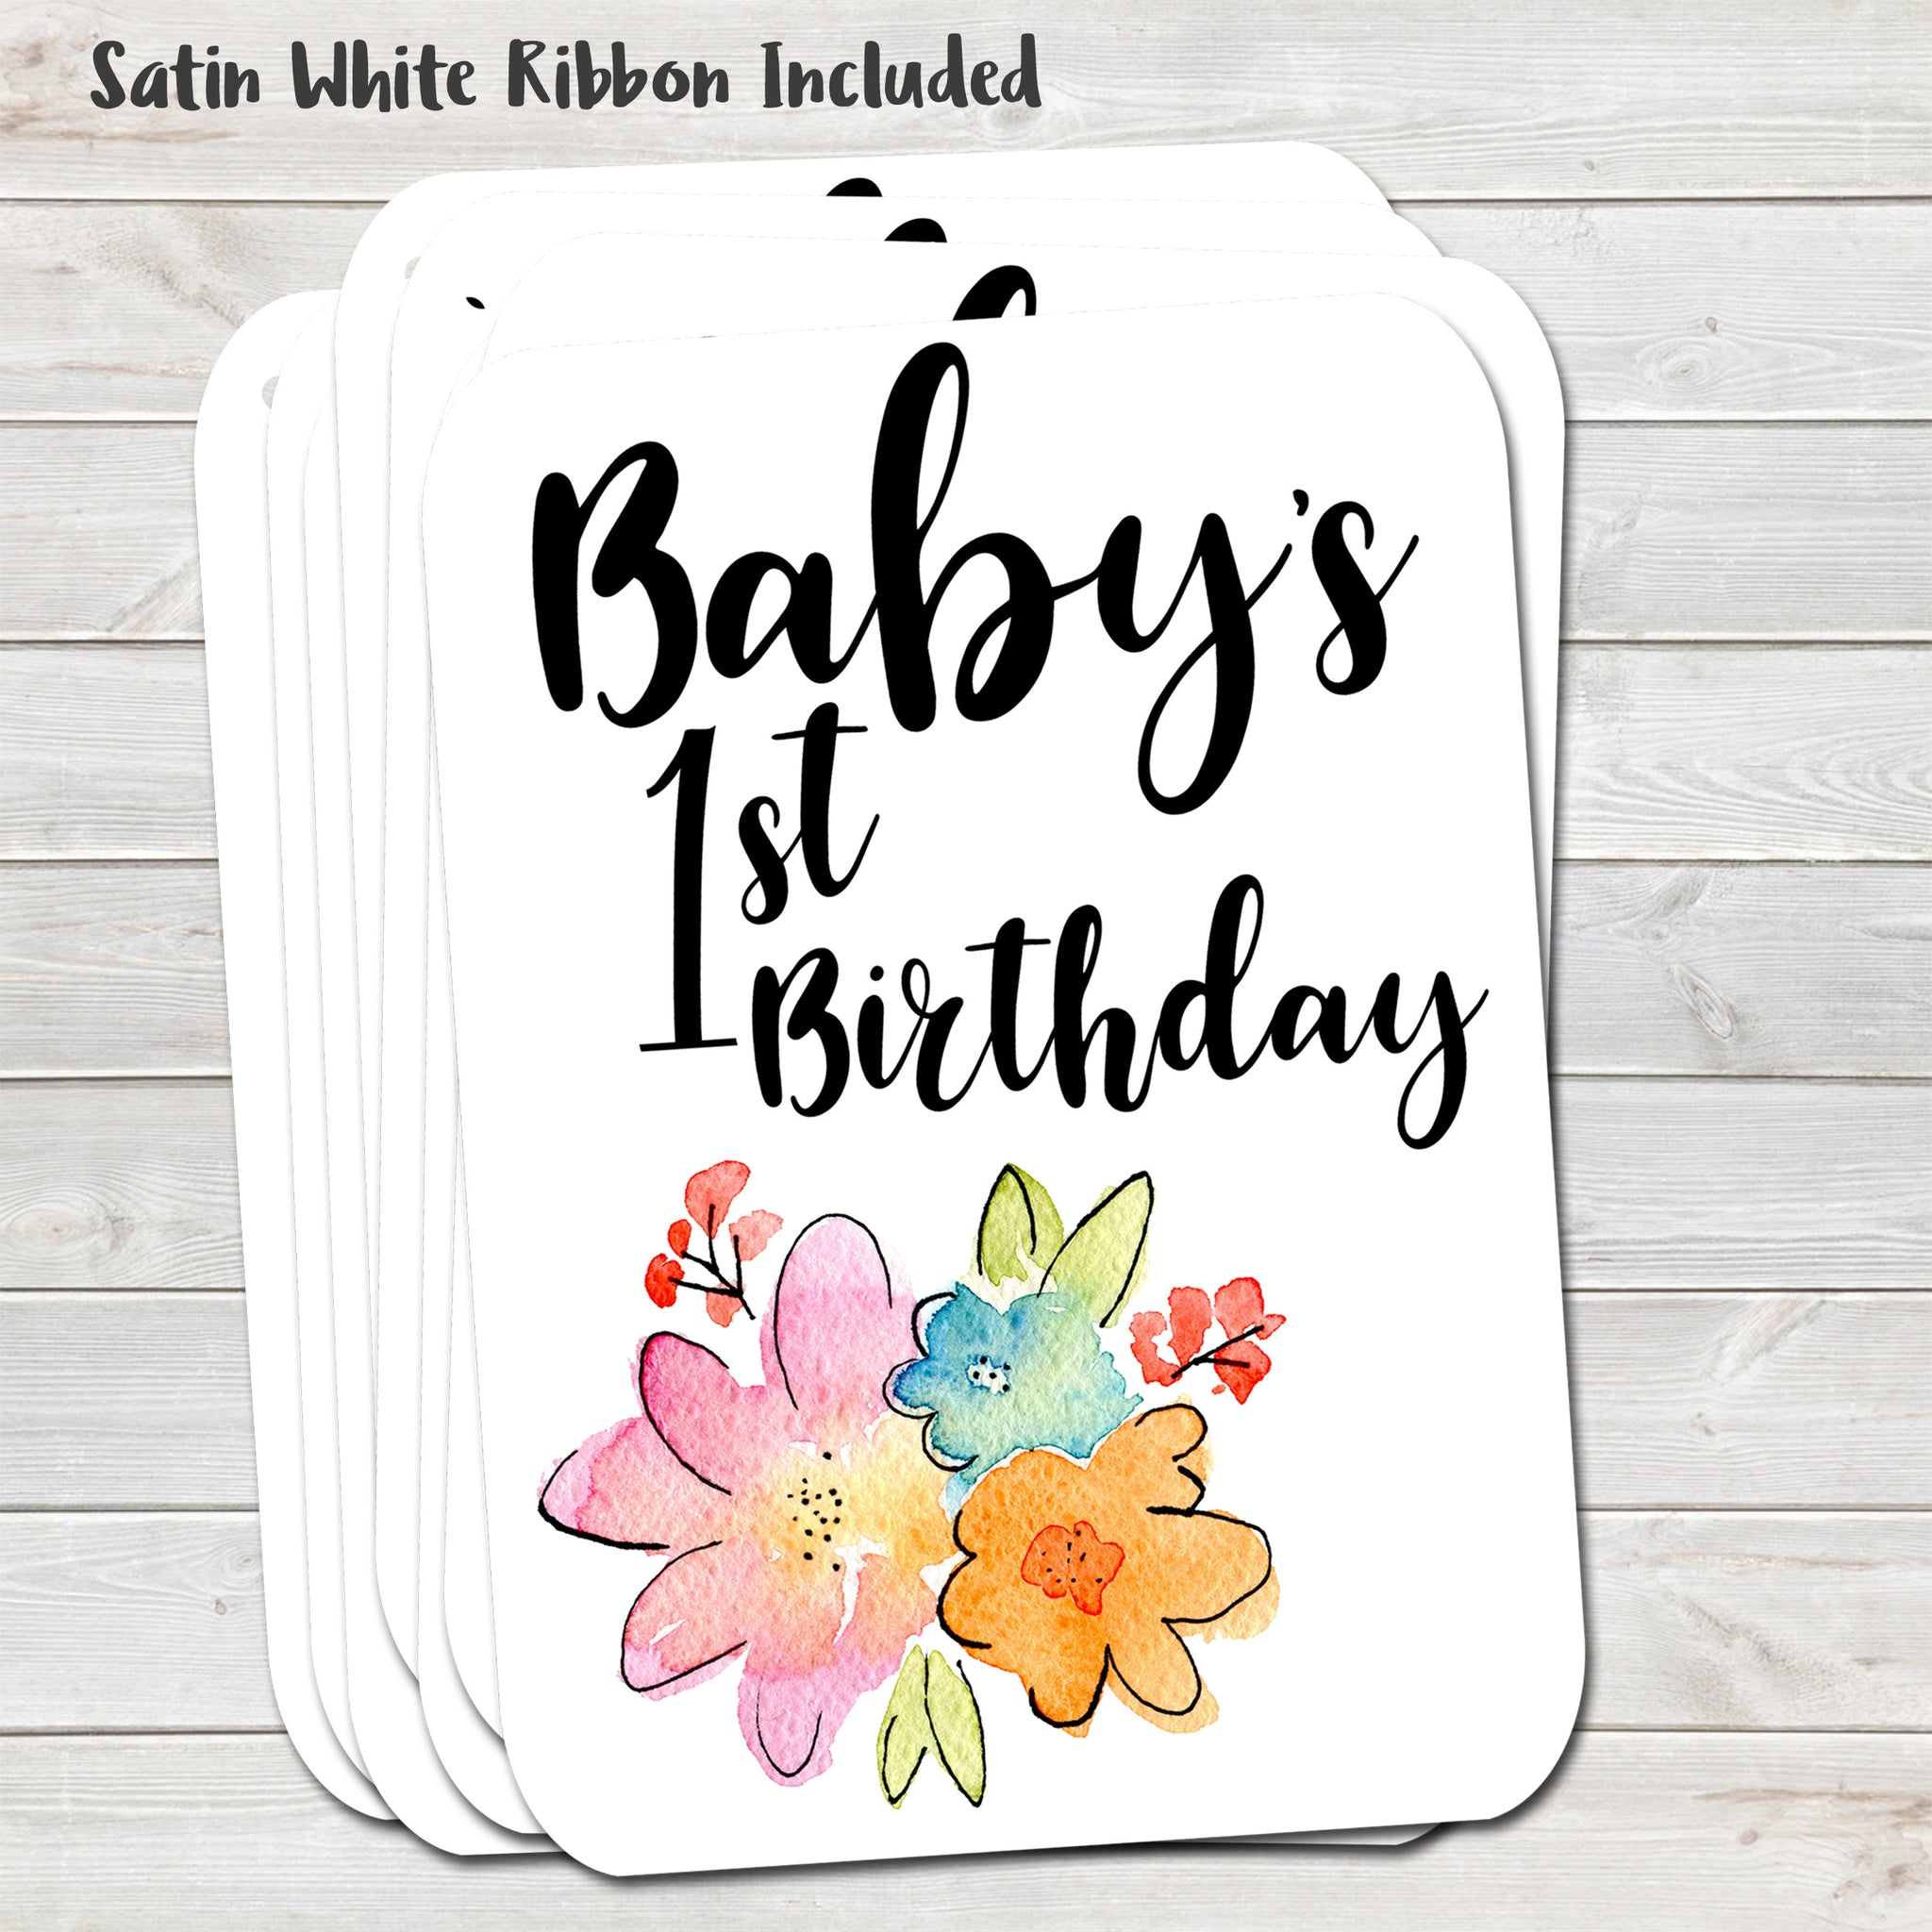 Baby's First Birthday Gift Tags, Floral Present Accessories (Pack of 8)